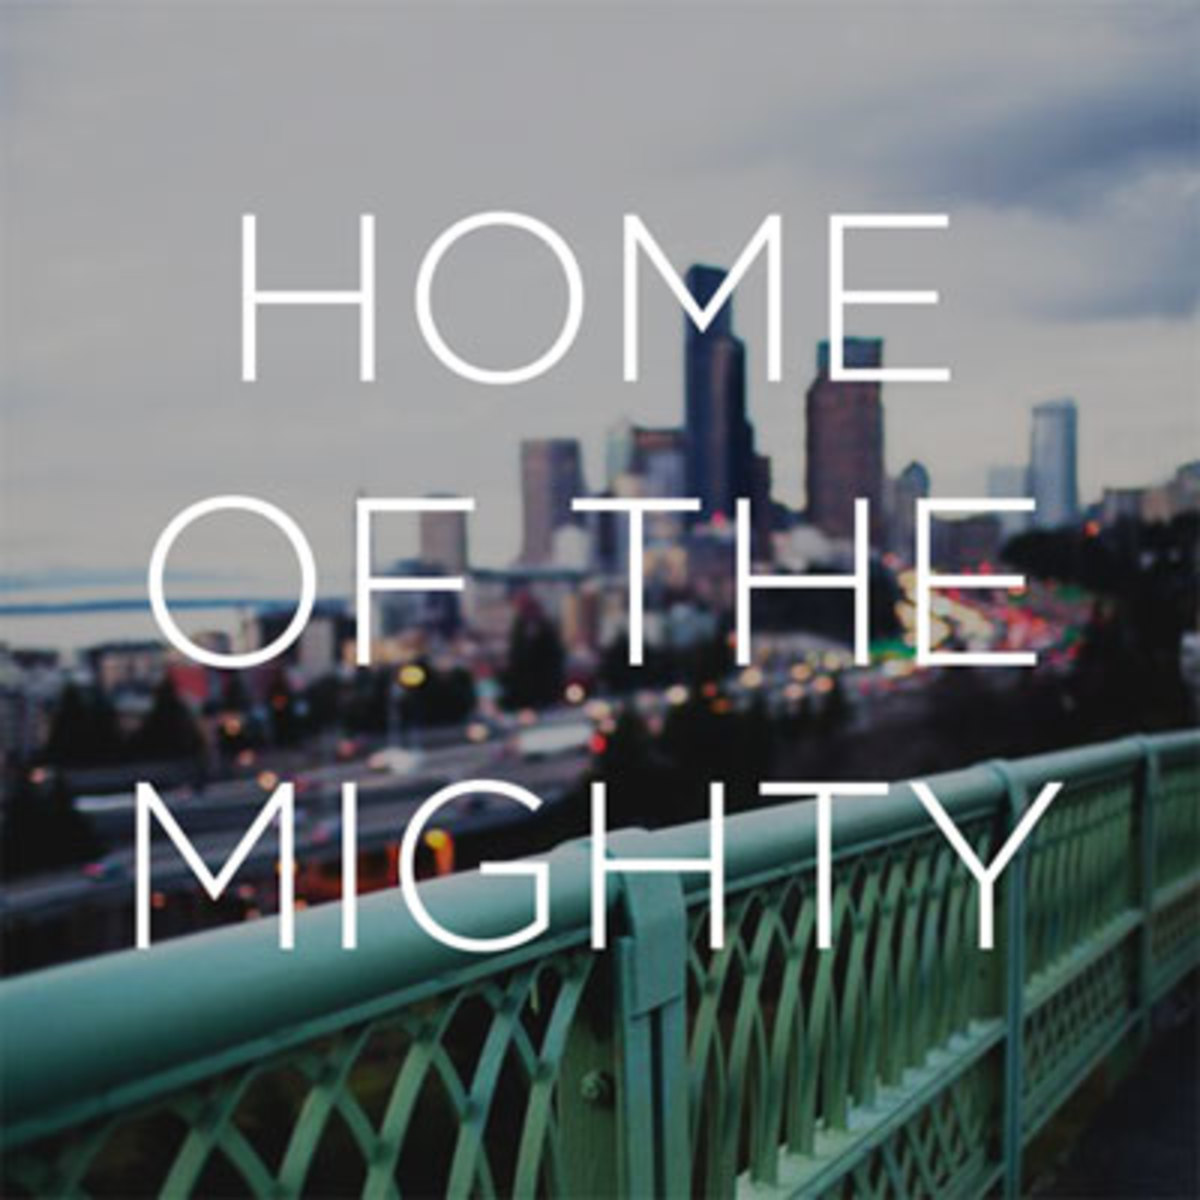 spek-homemighty.jpg